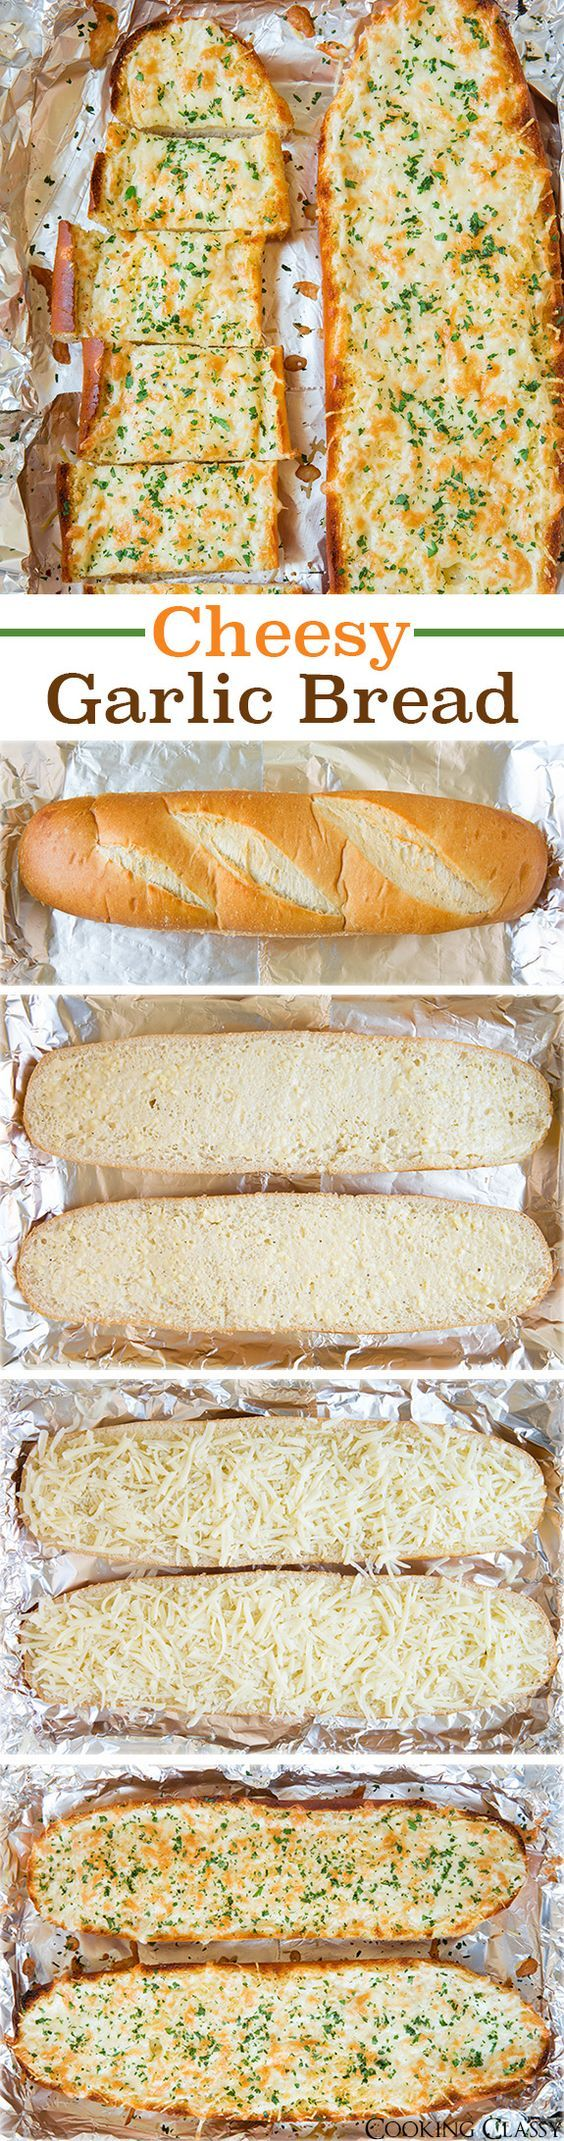 Cheesy Garlic Bread - this bread is AMAZING! I couldn't stop eating it! Love how versatile the recipe is.: